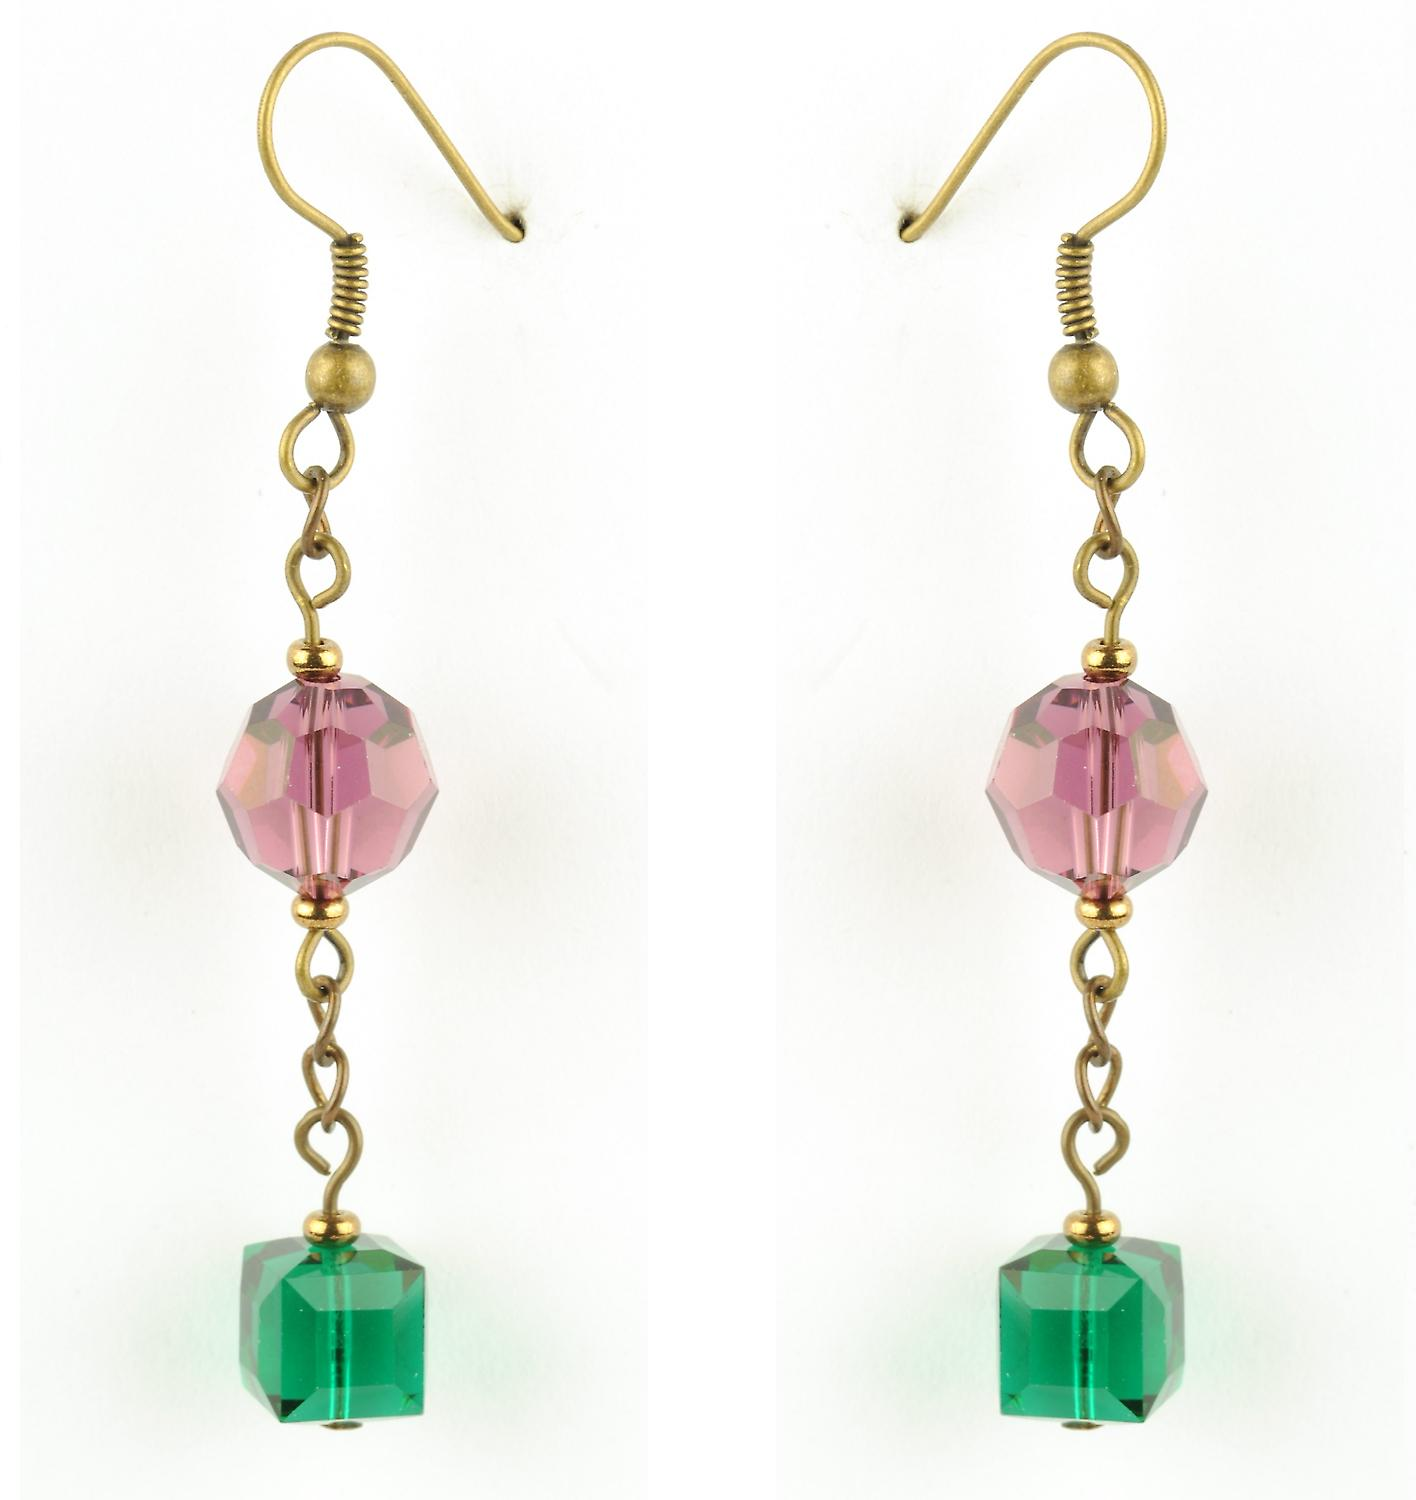 Waooh - jewelry - WJ0775 - earrings with Rhinestone Swarovski pink & green Emerald - mount colour gold